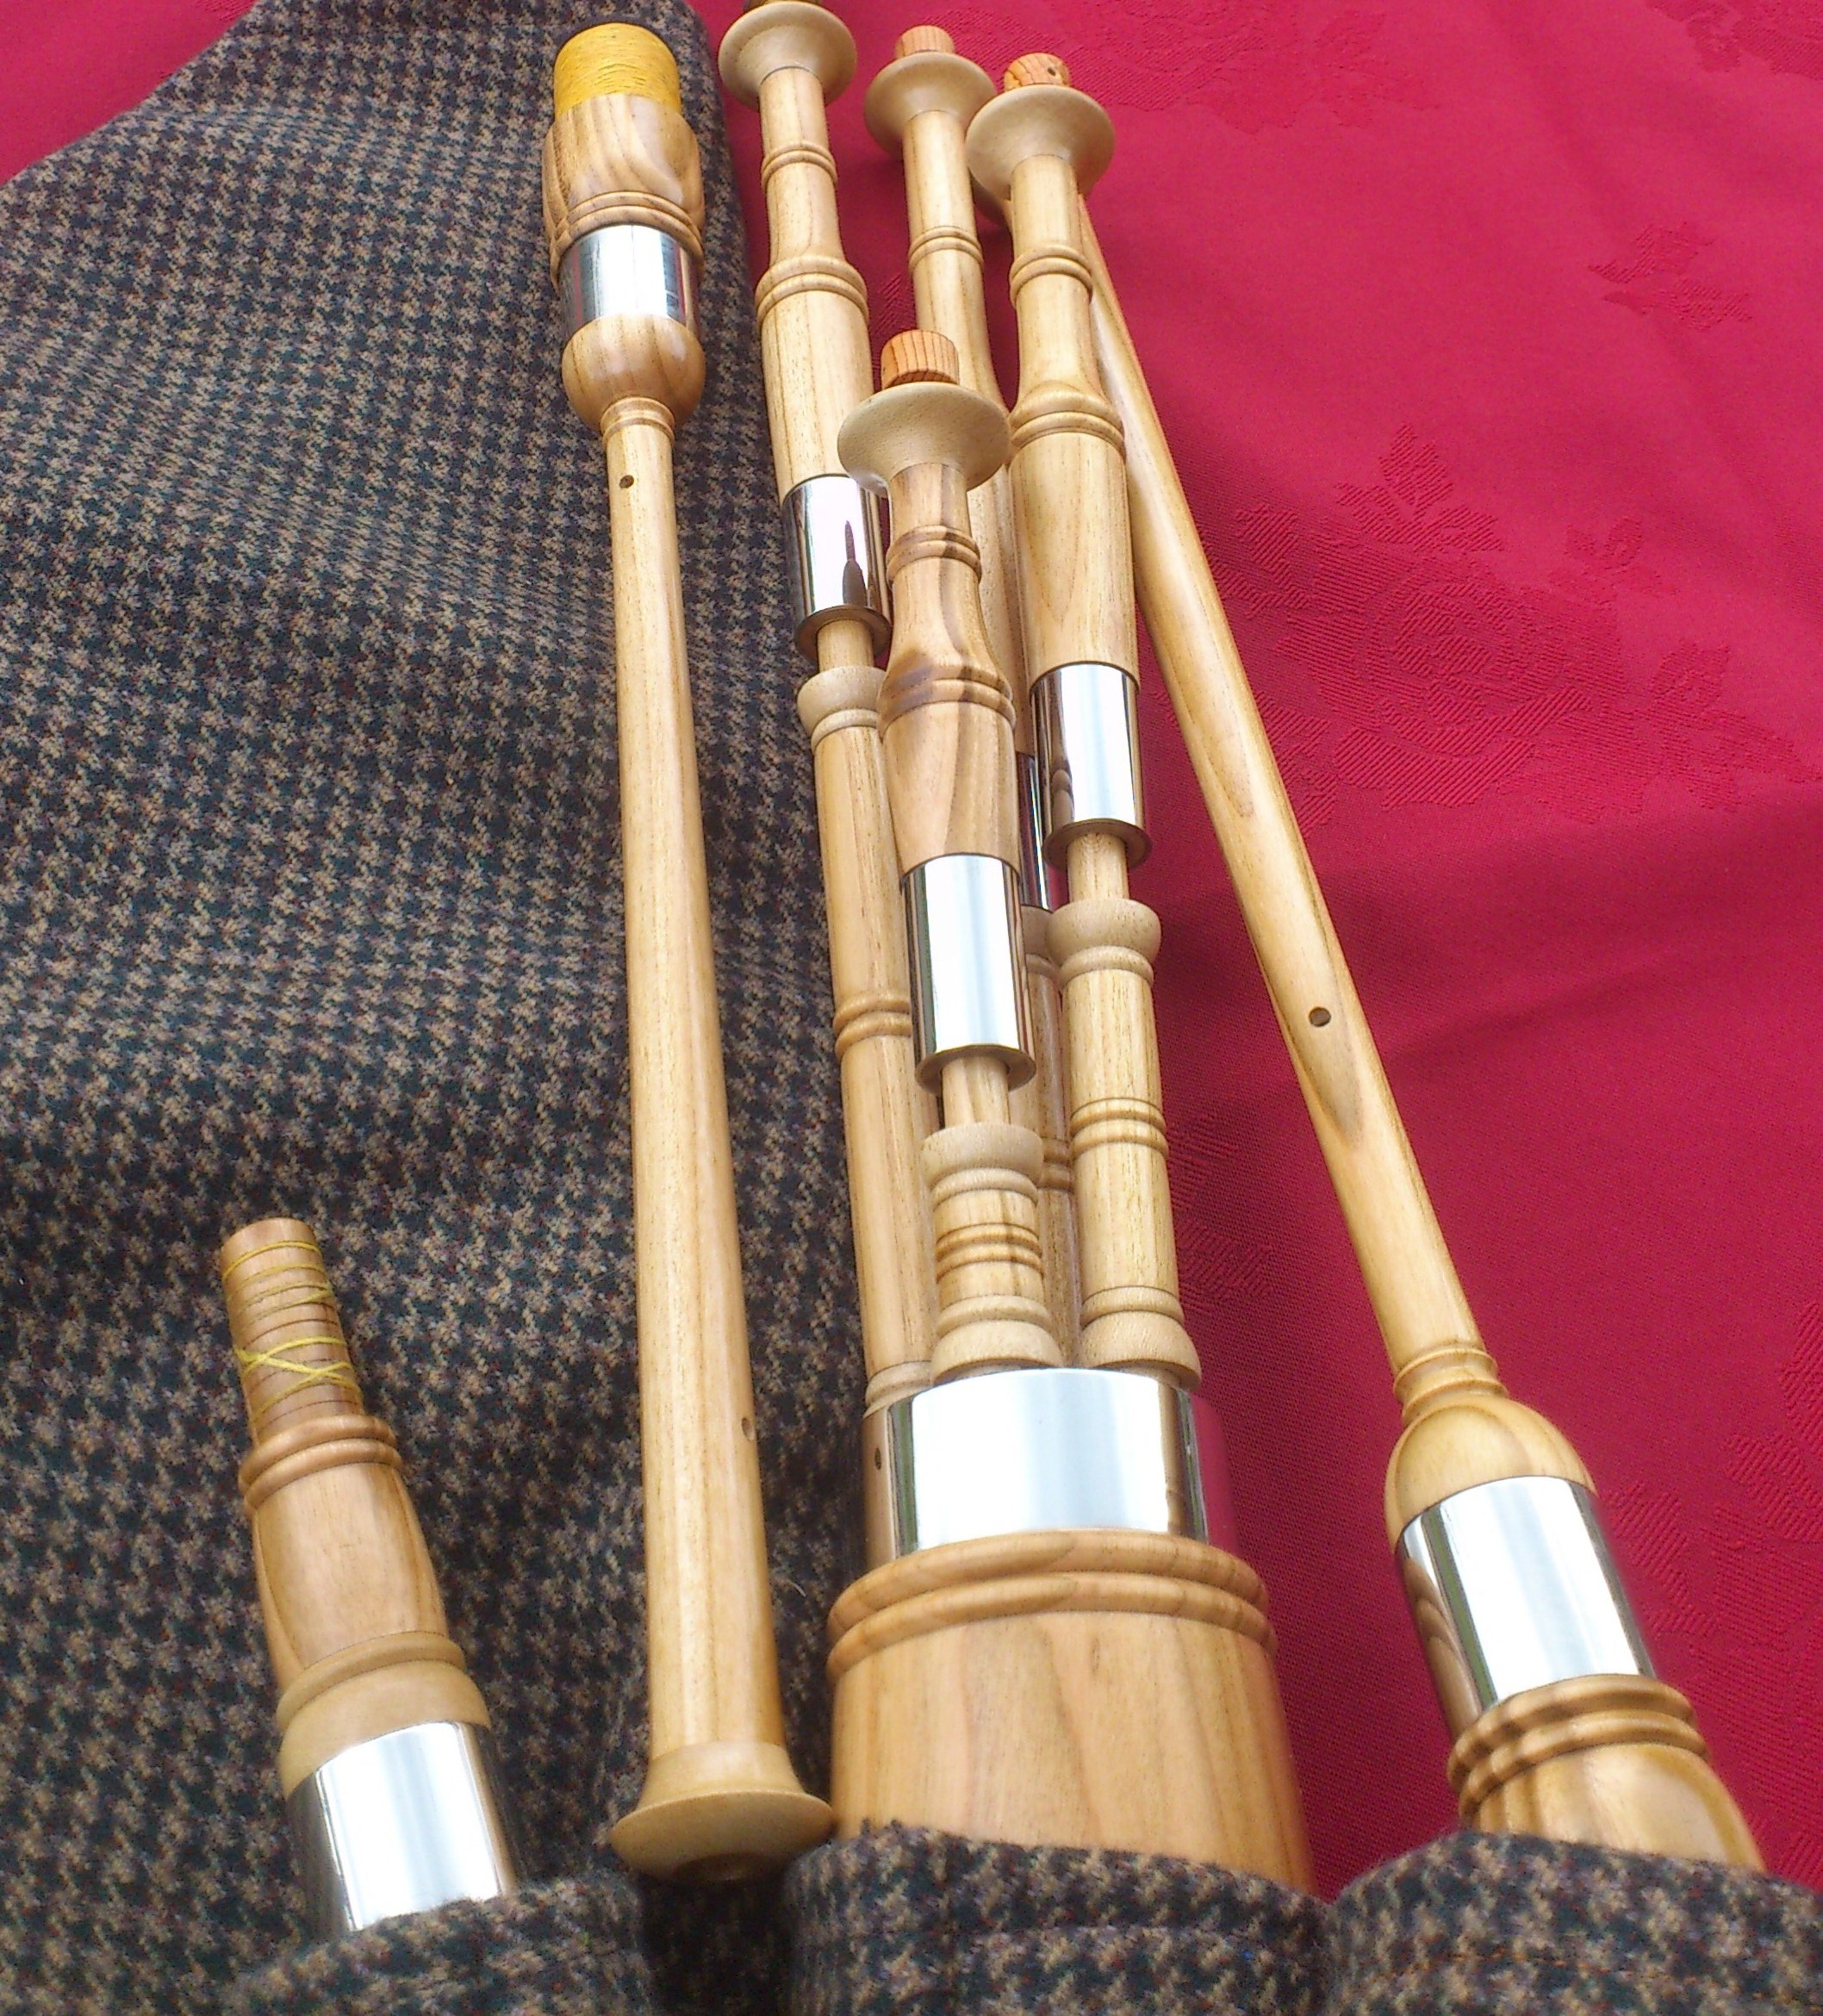 Cherry smallpipes